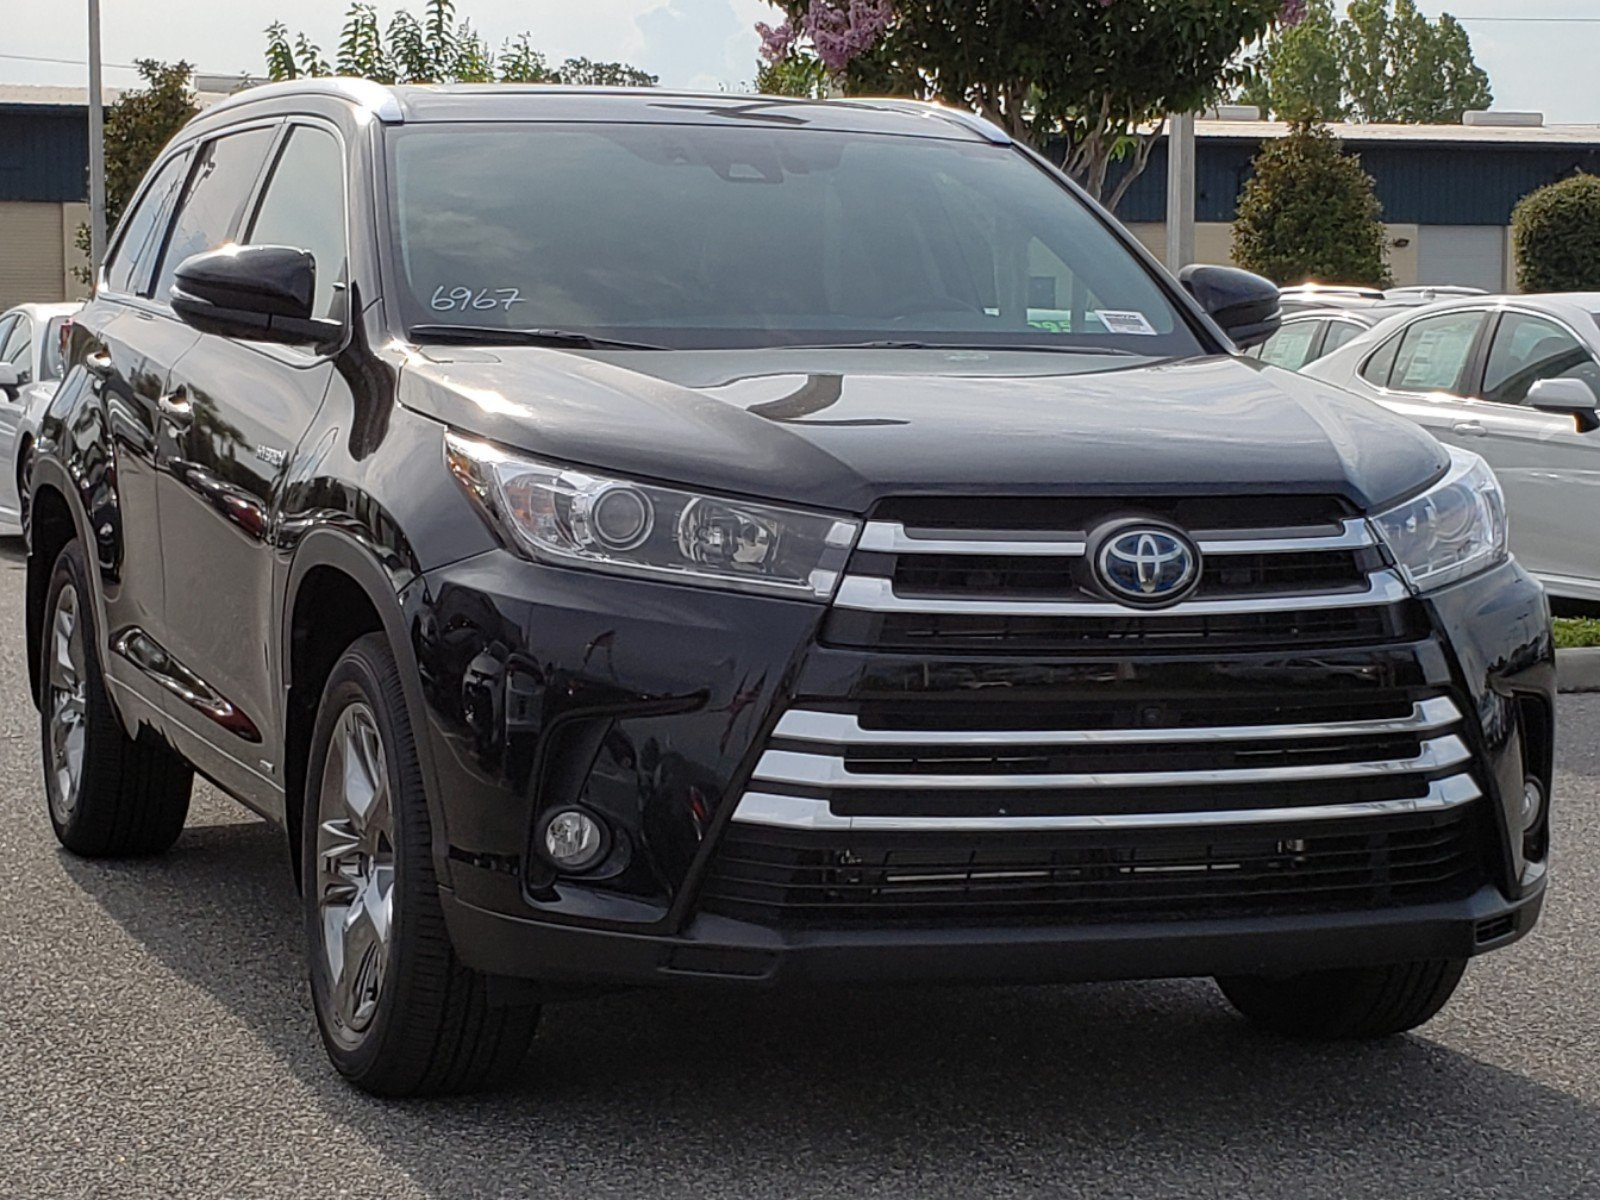 Toyota Highlander Owners Manual: If your vehicle has to bestopped in anemergency